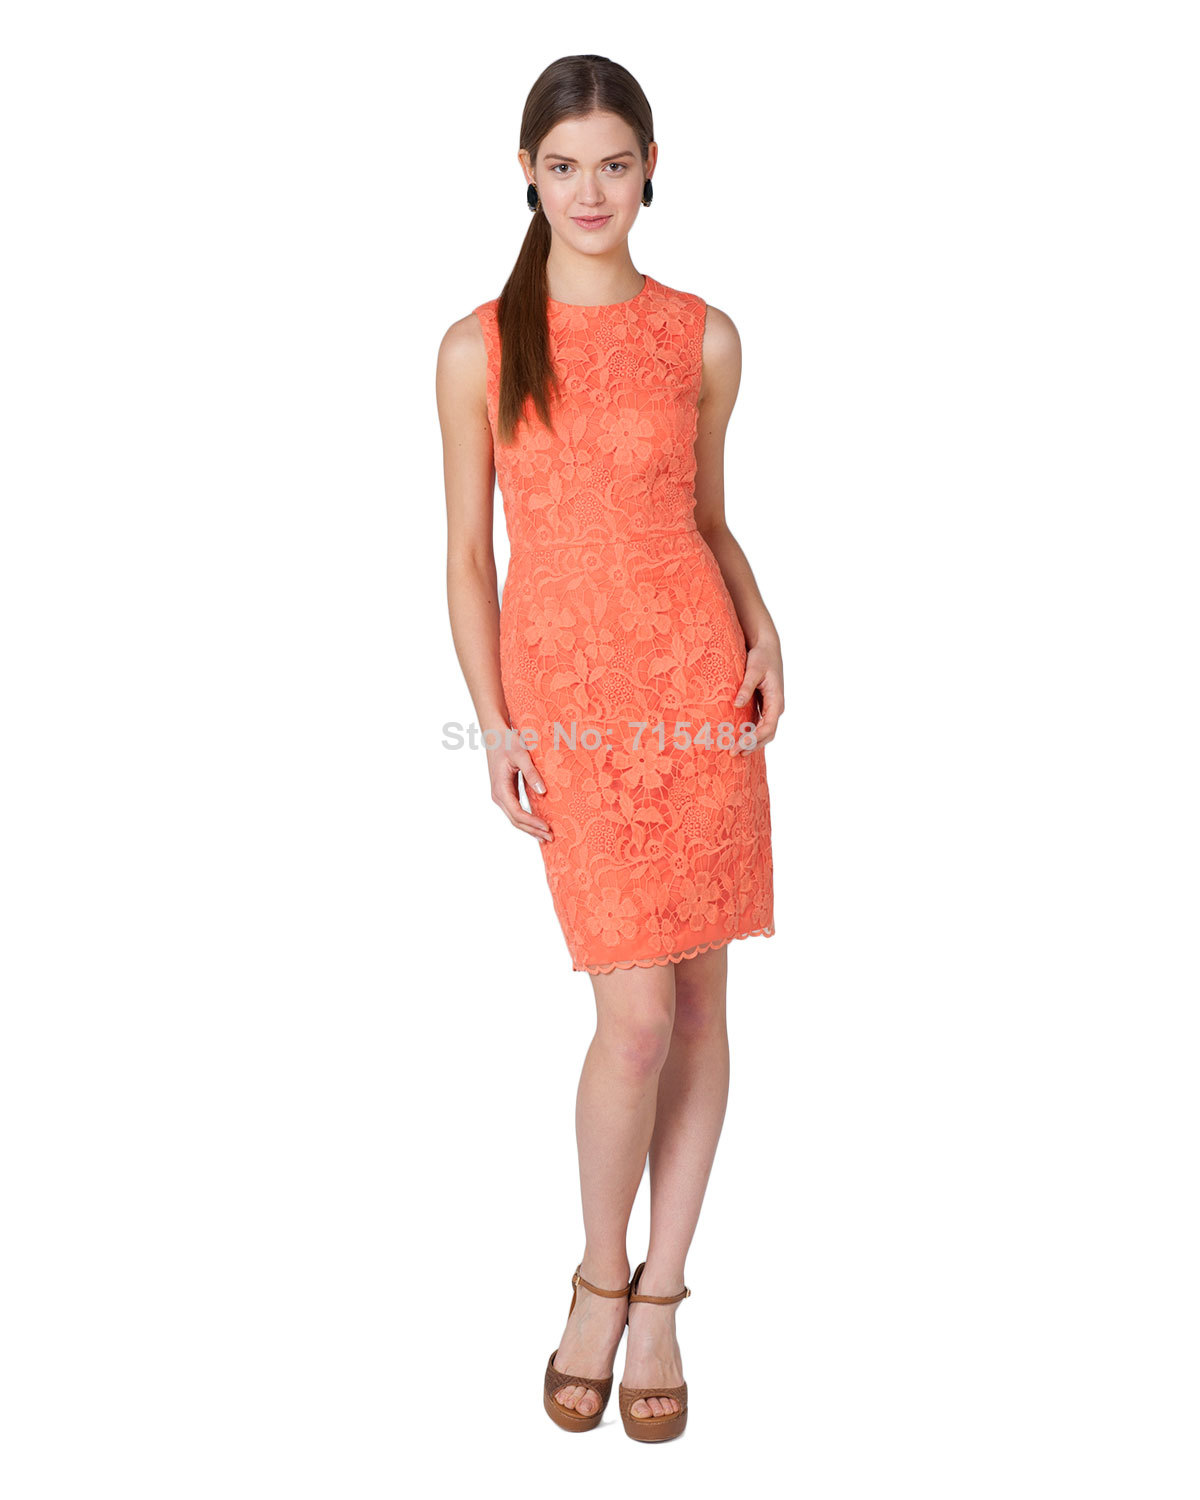 2014 new western formal italian sexysee through lace cocktail party 2014 new western formal italian sexysee through lace cocktail party dresses short patterns for teenagers girls in cocktail dresses from weddings events on ombrellifo Image collections